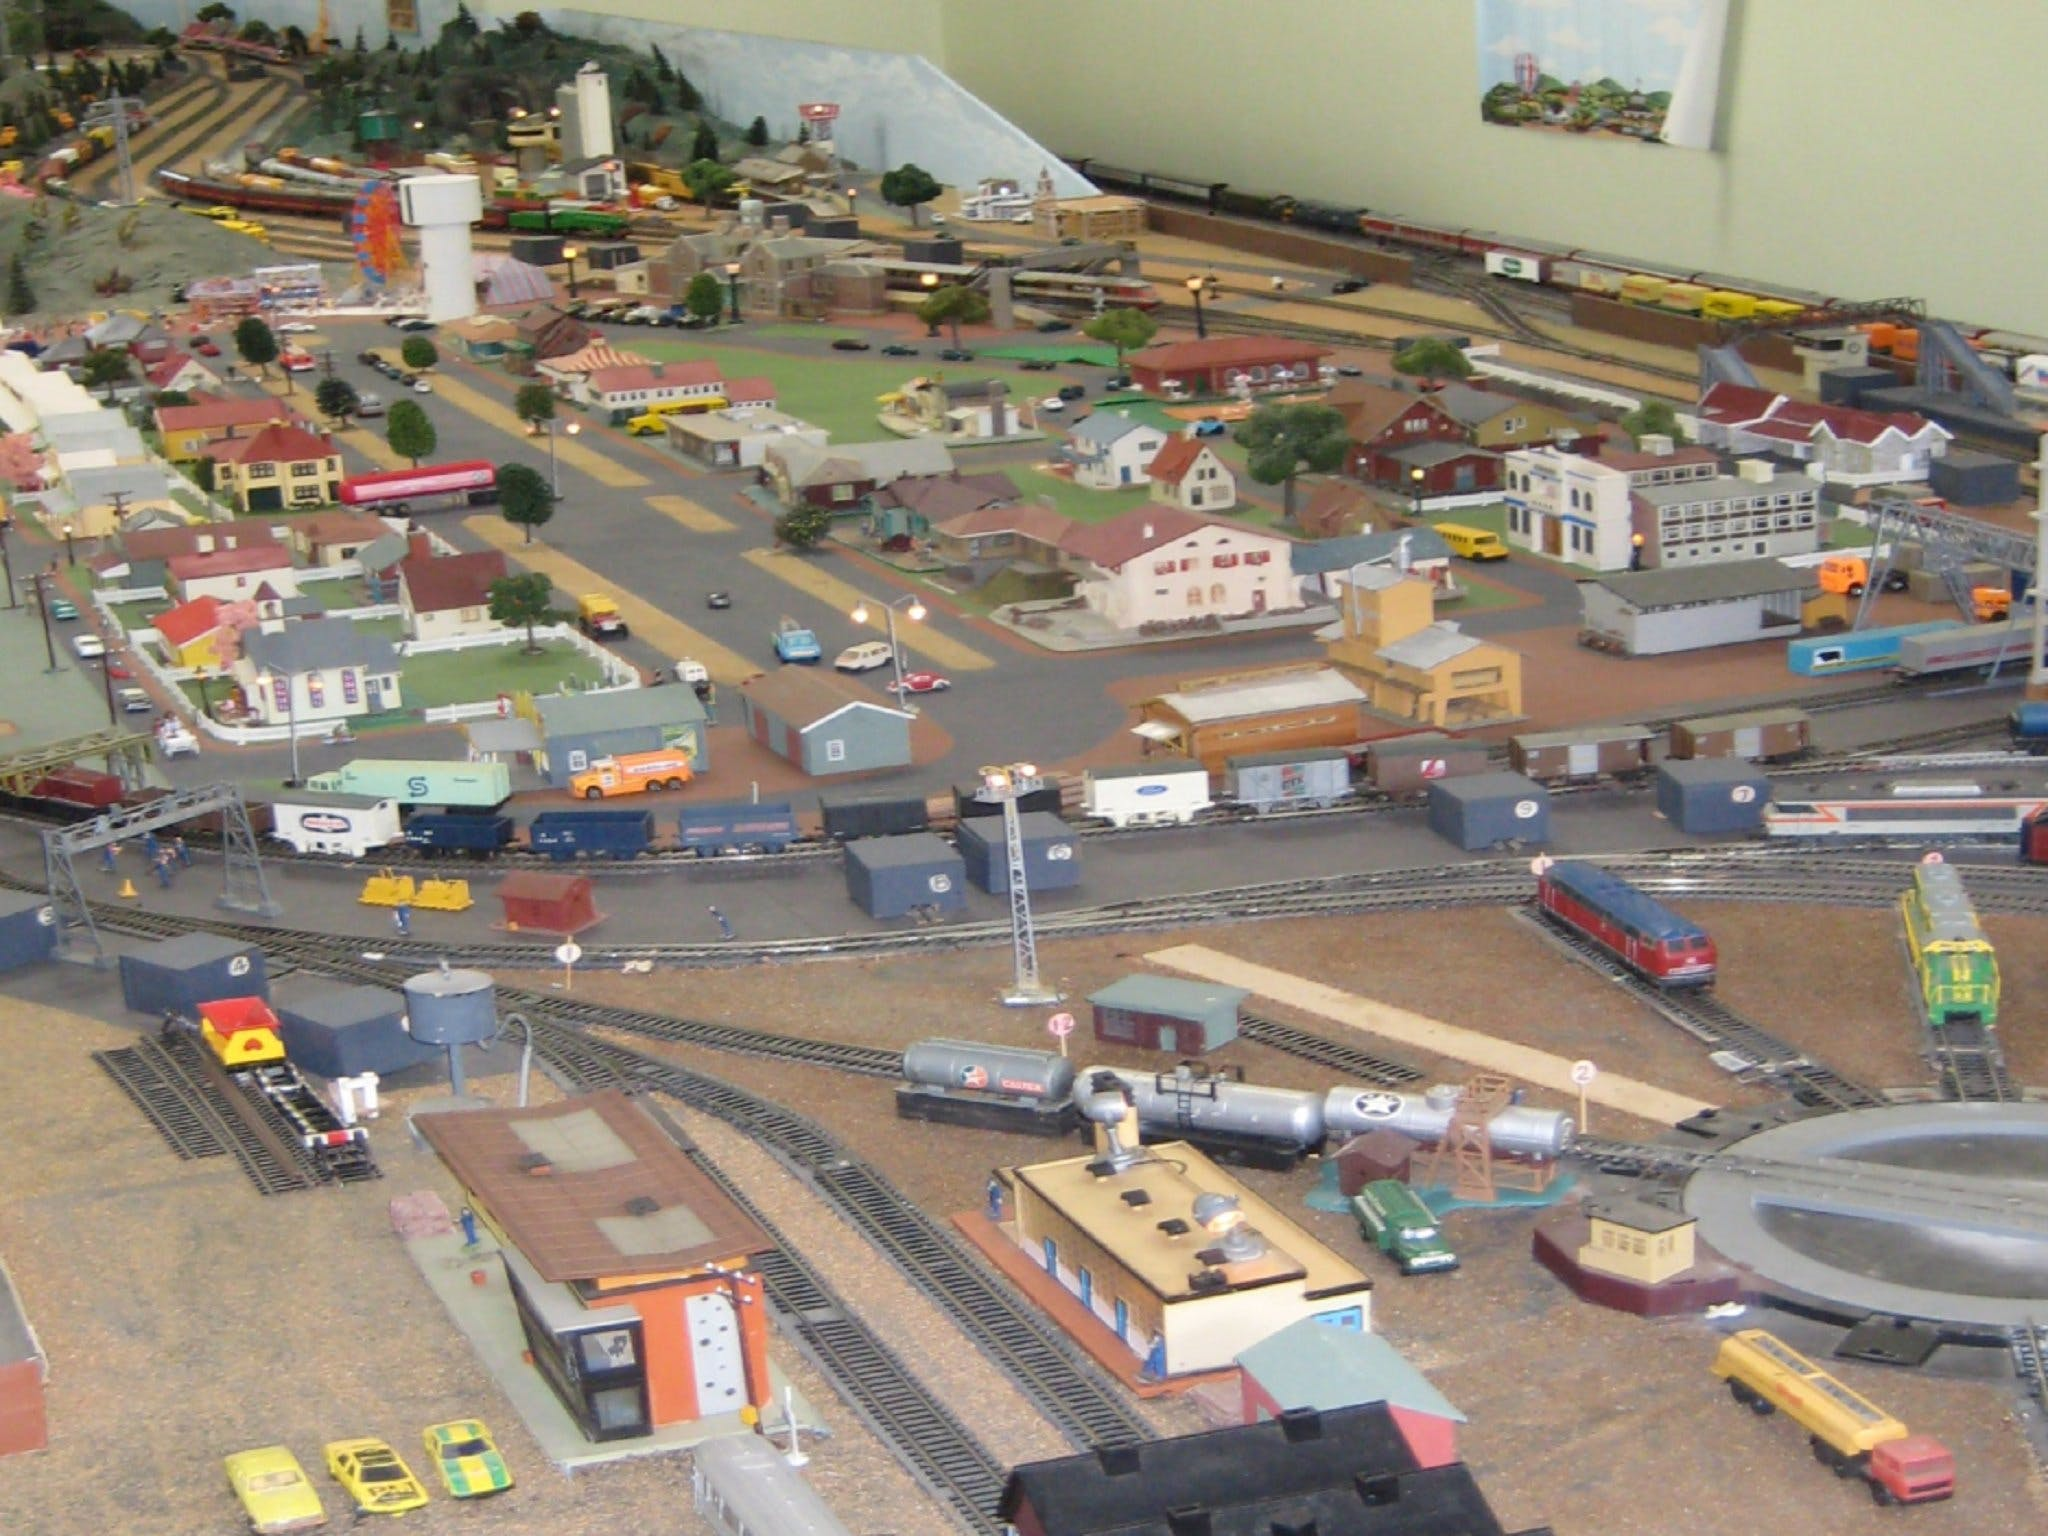 Heywood Model Trains - Accommodation Tasmania